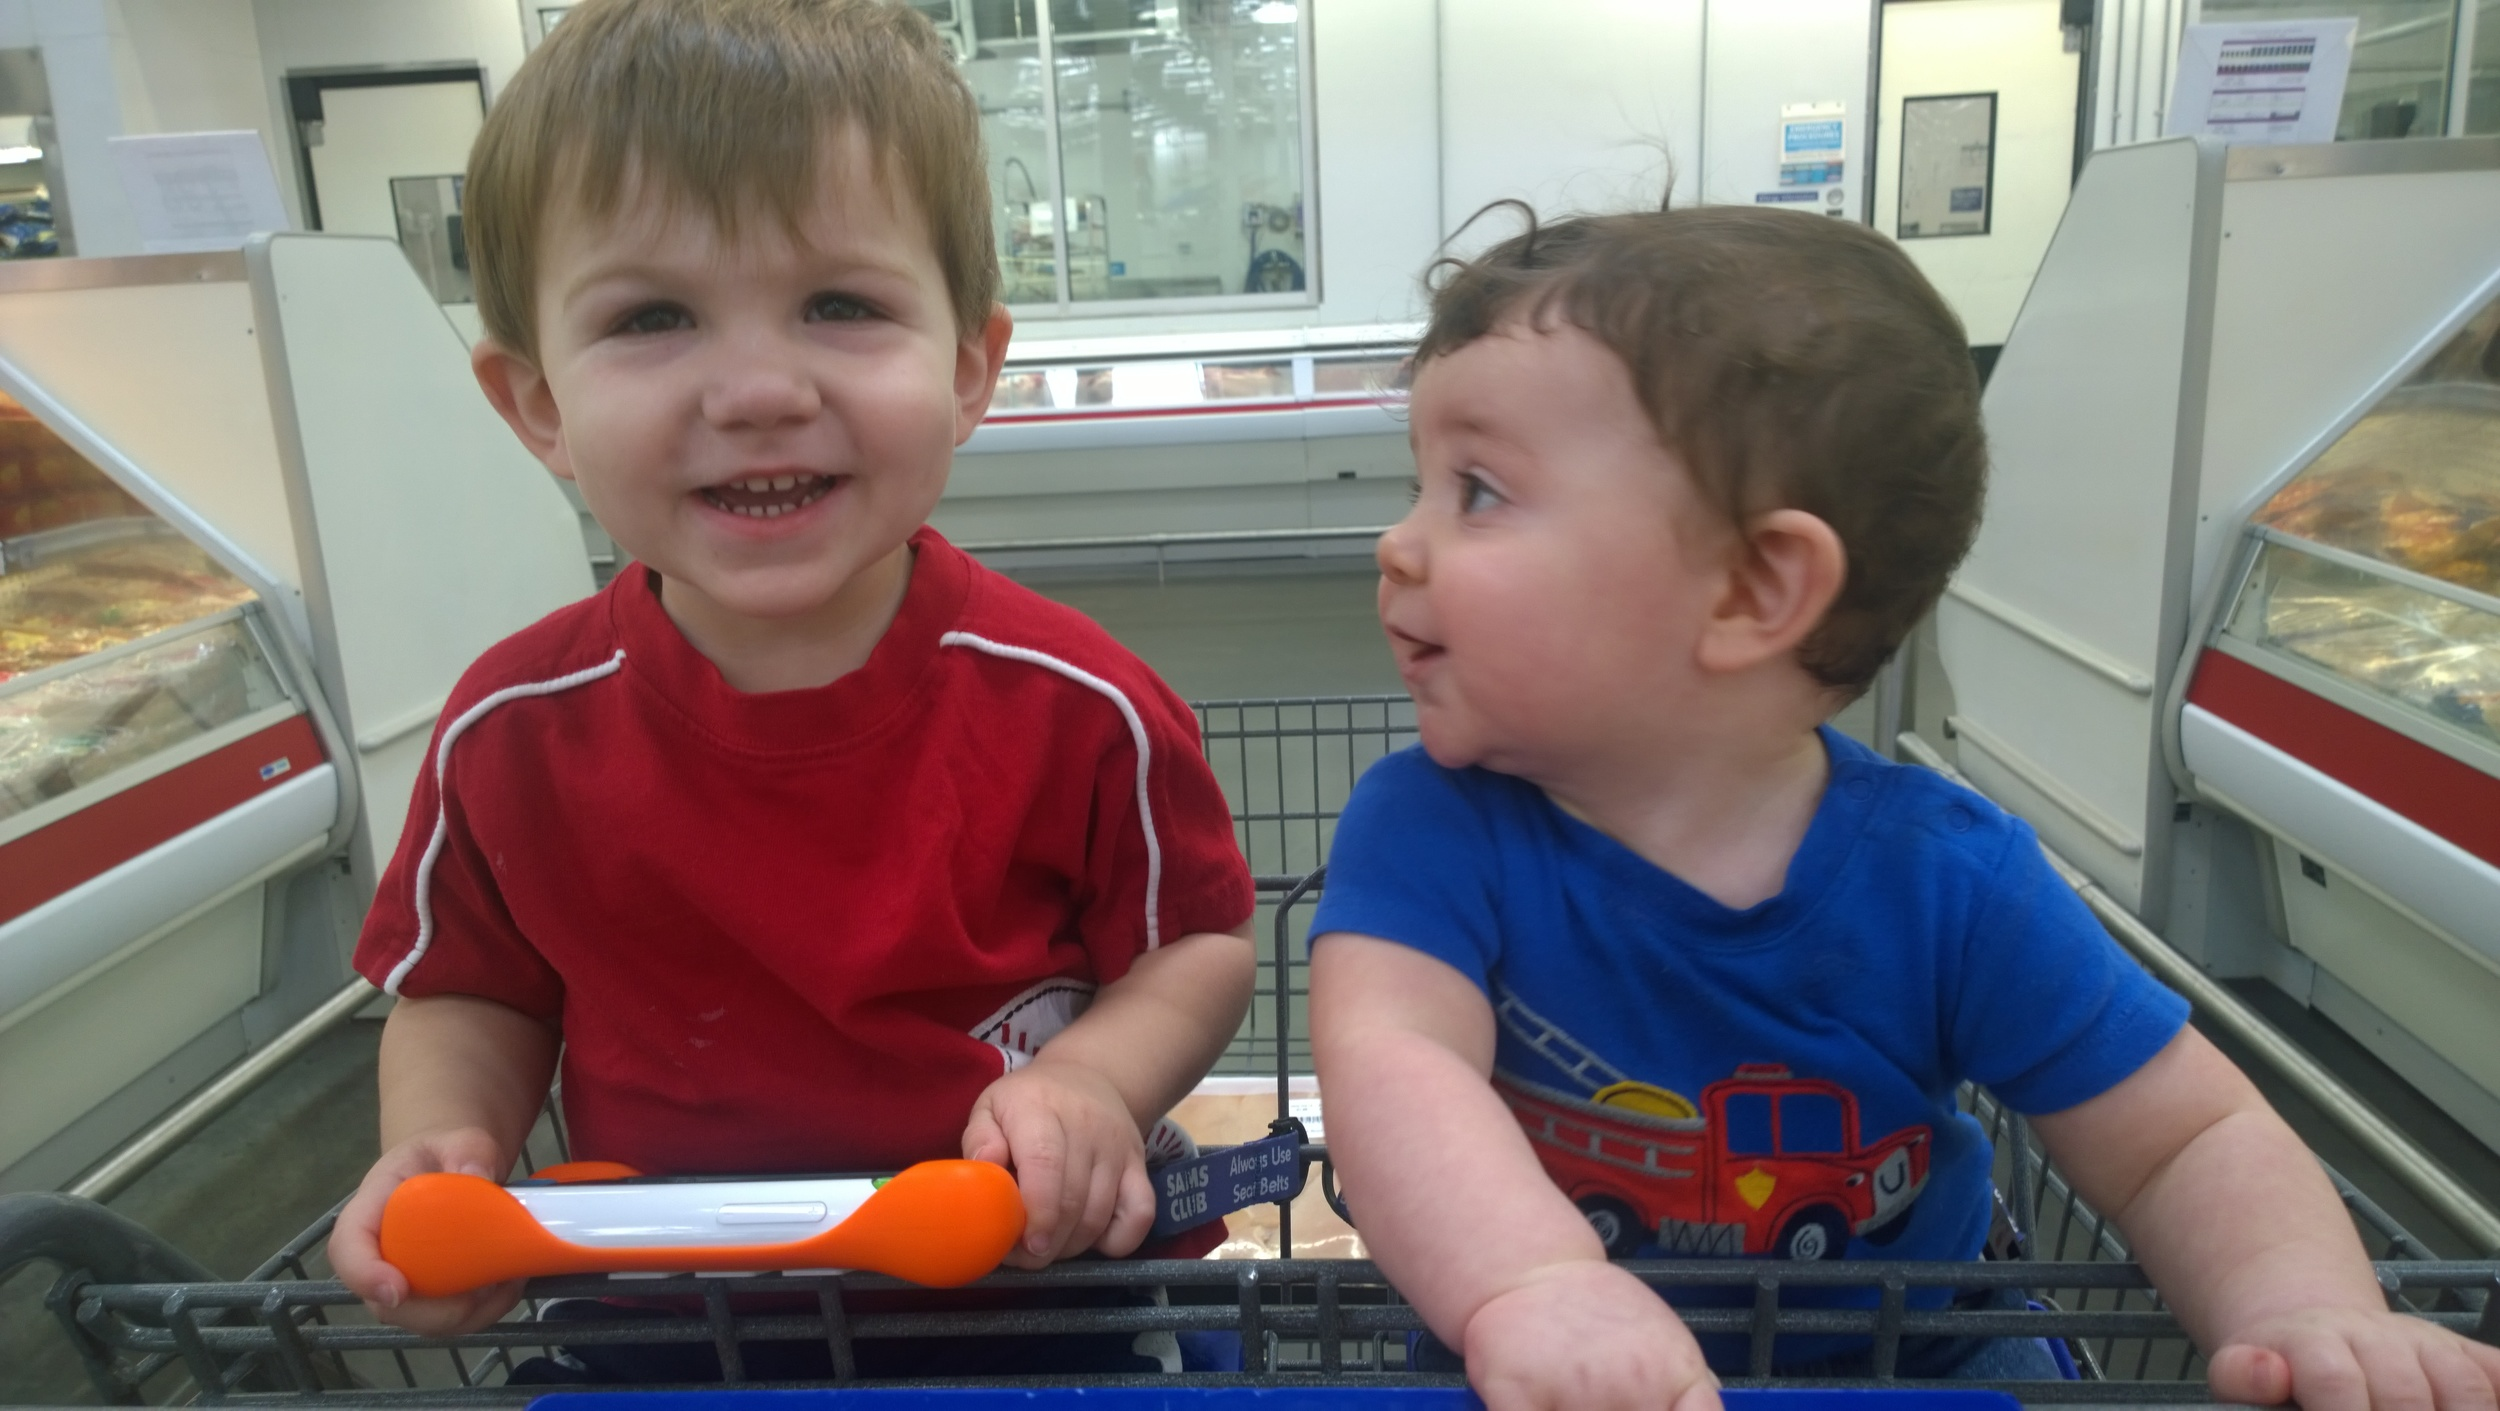 One trip to Sam's that ended with me pushing the cart and holding a 20 lb. baby at the same time.